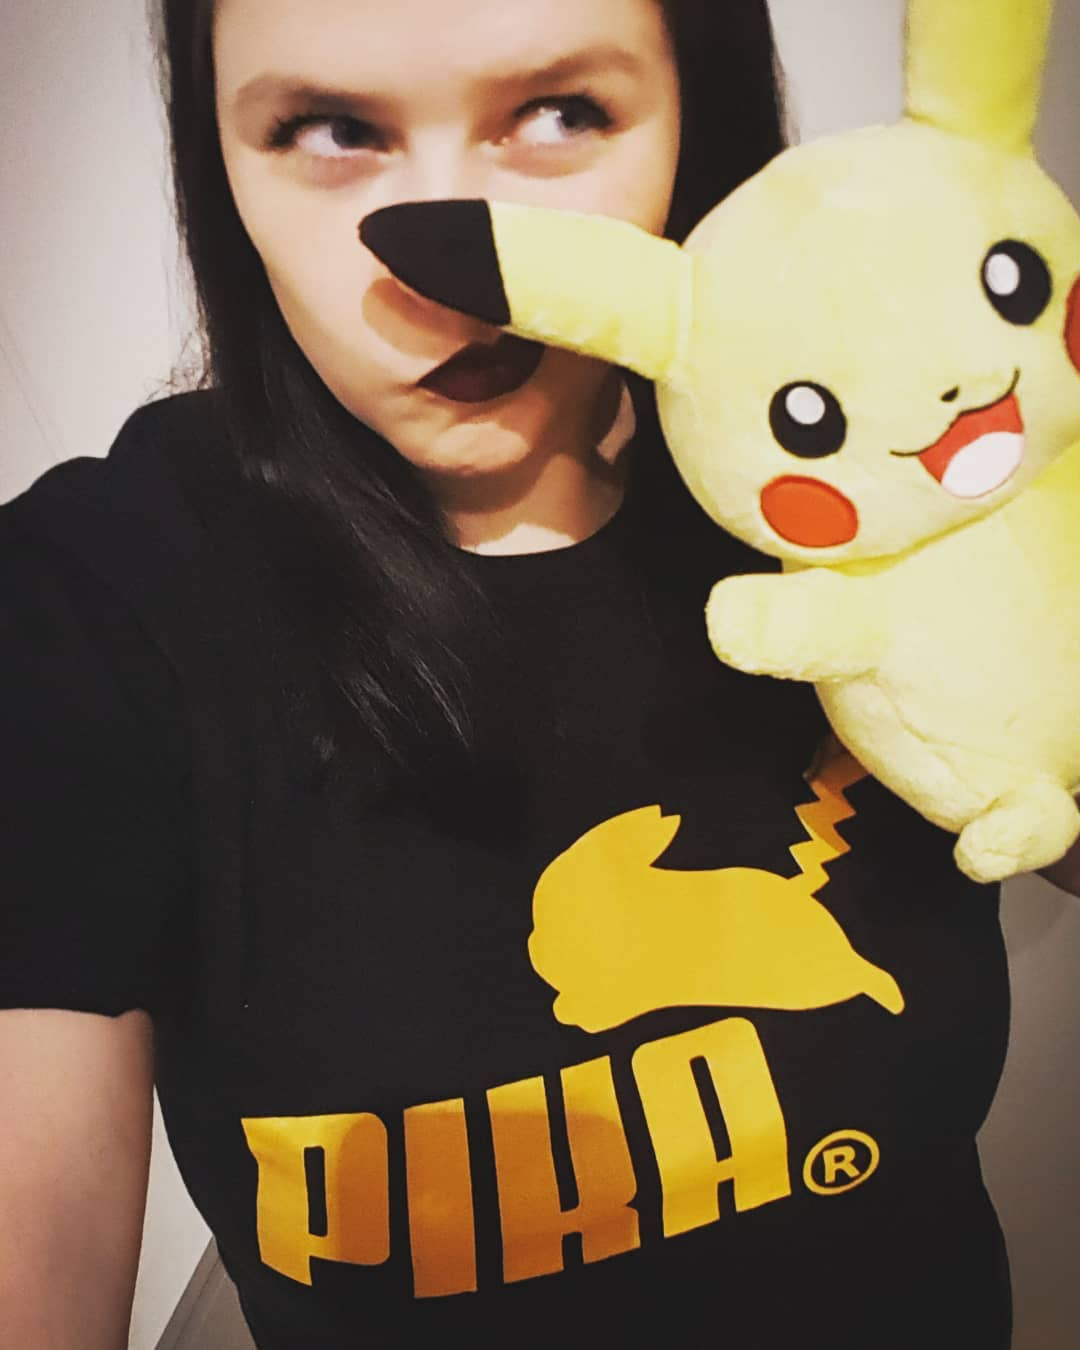 Puma Logo Pika Pokemon Pikachu Mashup Shirts photo review